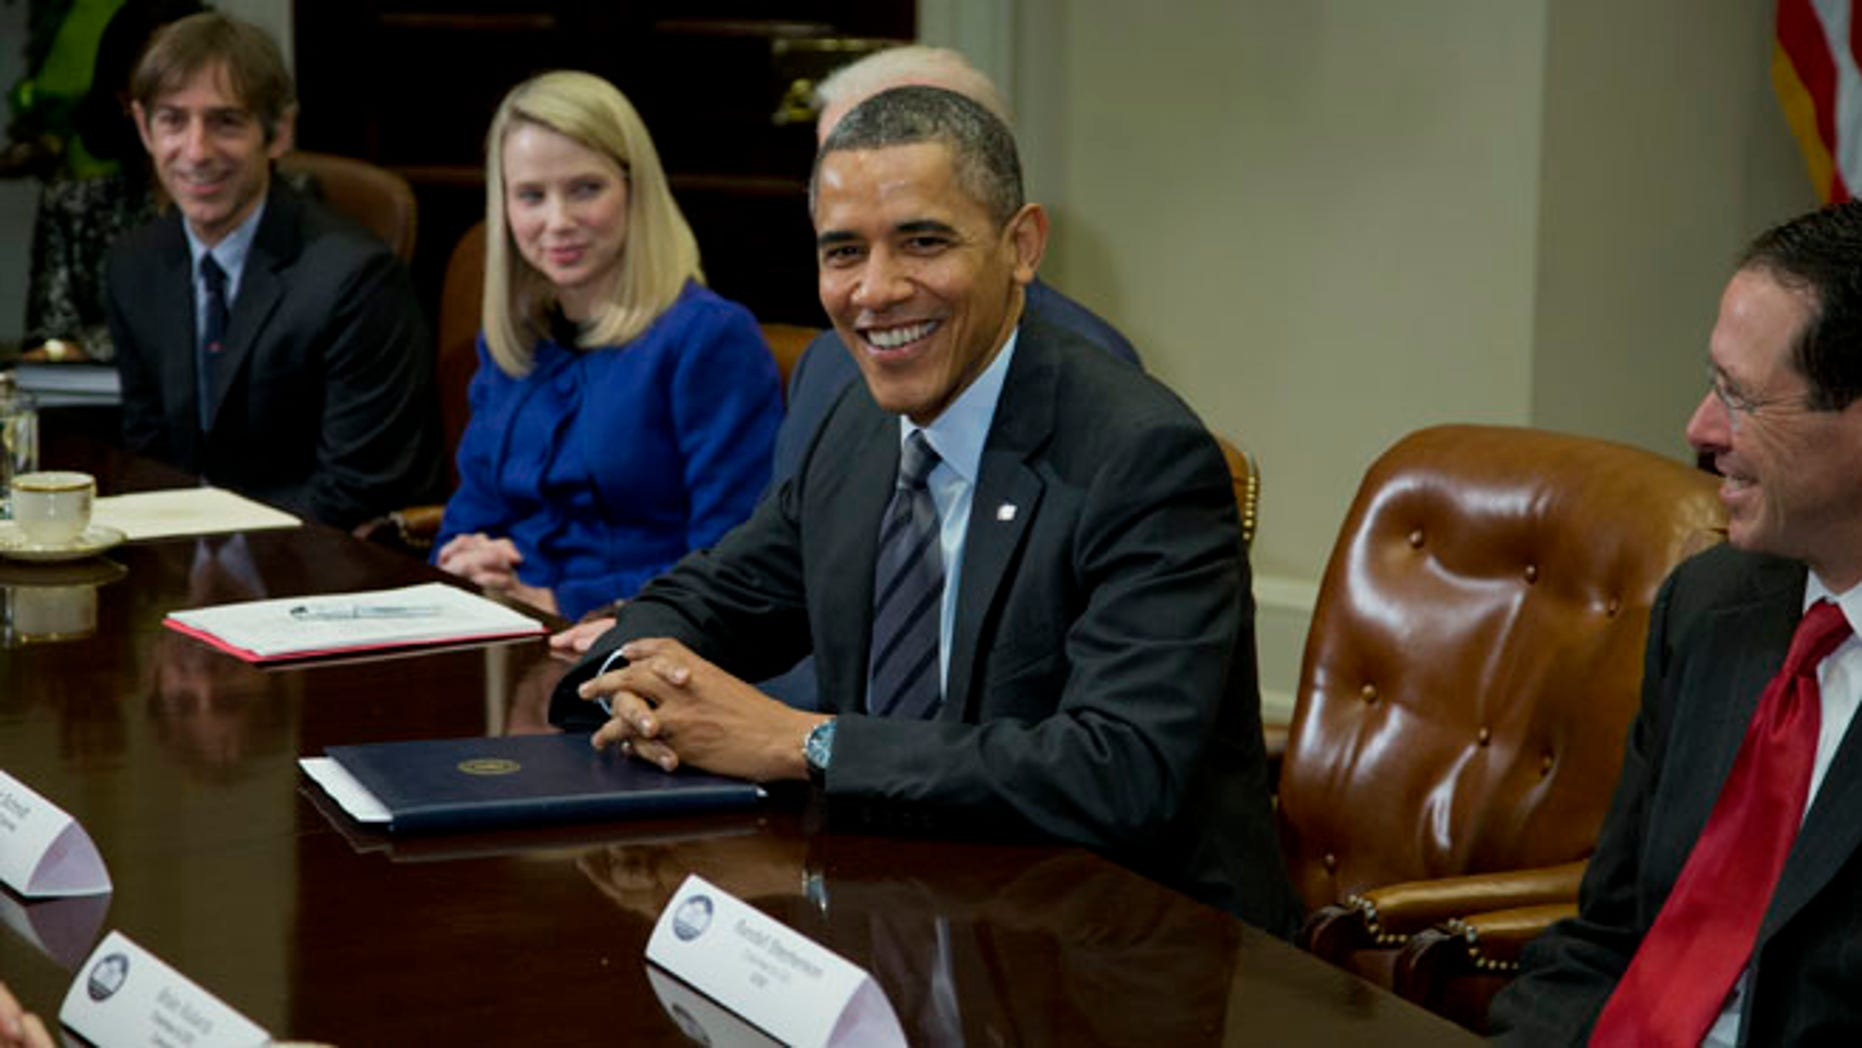 President Obama meets with technology executives at the White House in Washington, Tuesday, Dec. 17, 2013.